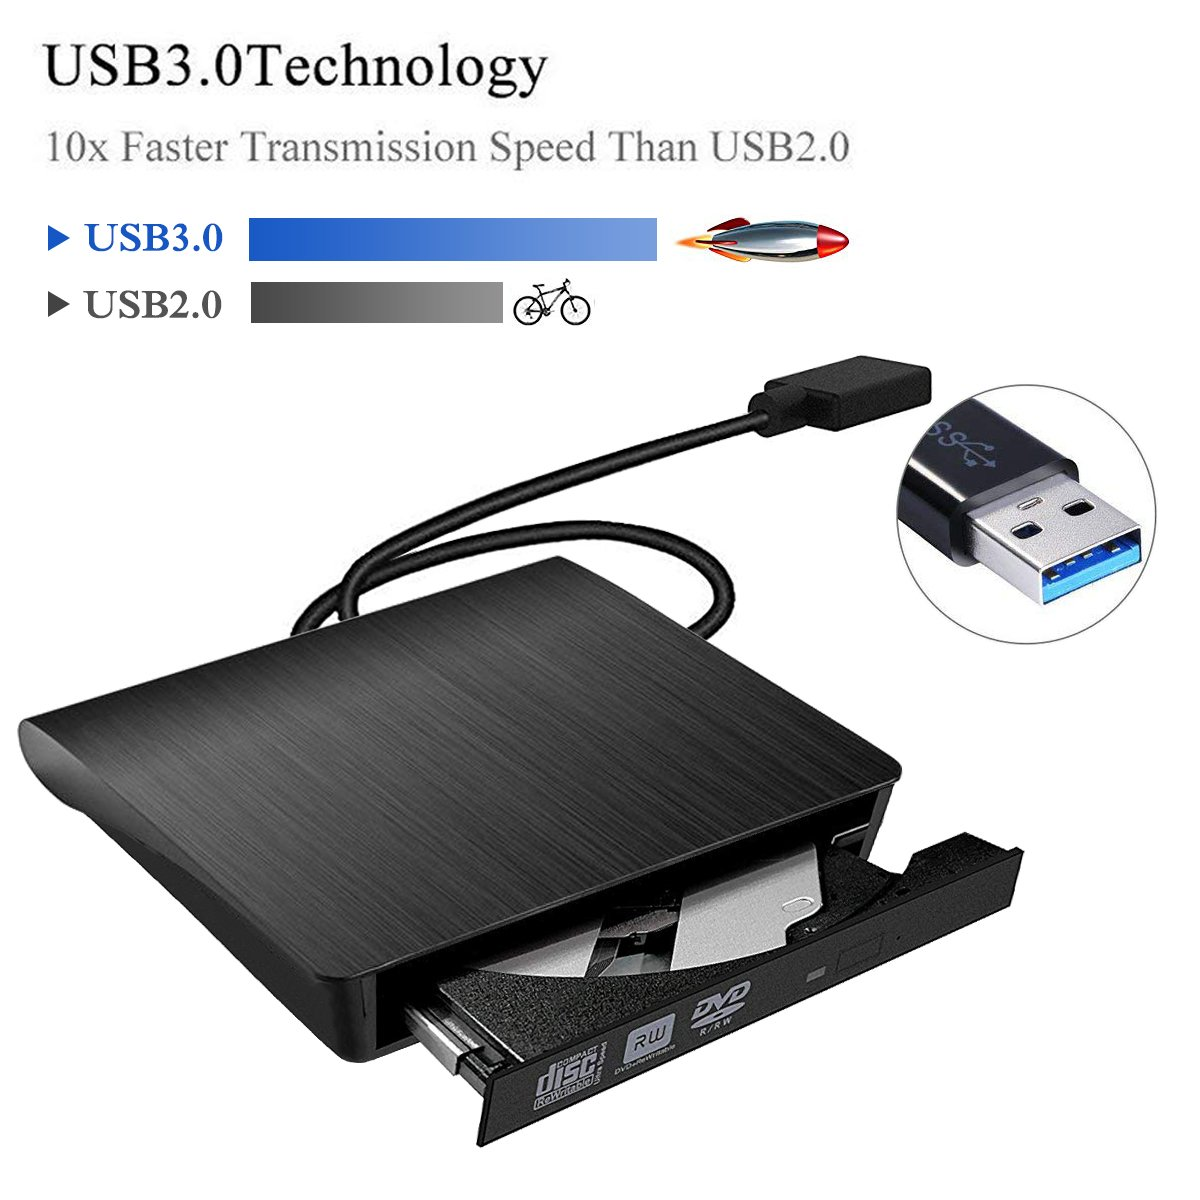 External DVD Drive, SUMBOAT USB 3.0 Portable Slim DVD CD Rom Burner Rewriter Driver,High Speed Data Transfer for Laptop Mac 10 OS Windows XP /2003/Vista/Win 7/ Win 8/Win 10 Linux by SUMBOAT (Image #4)